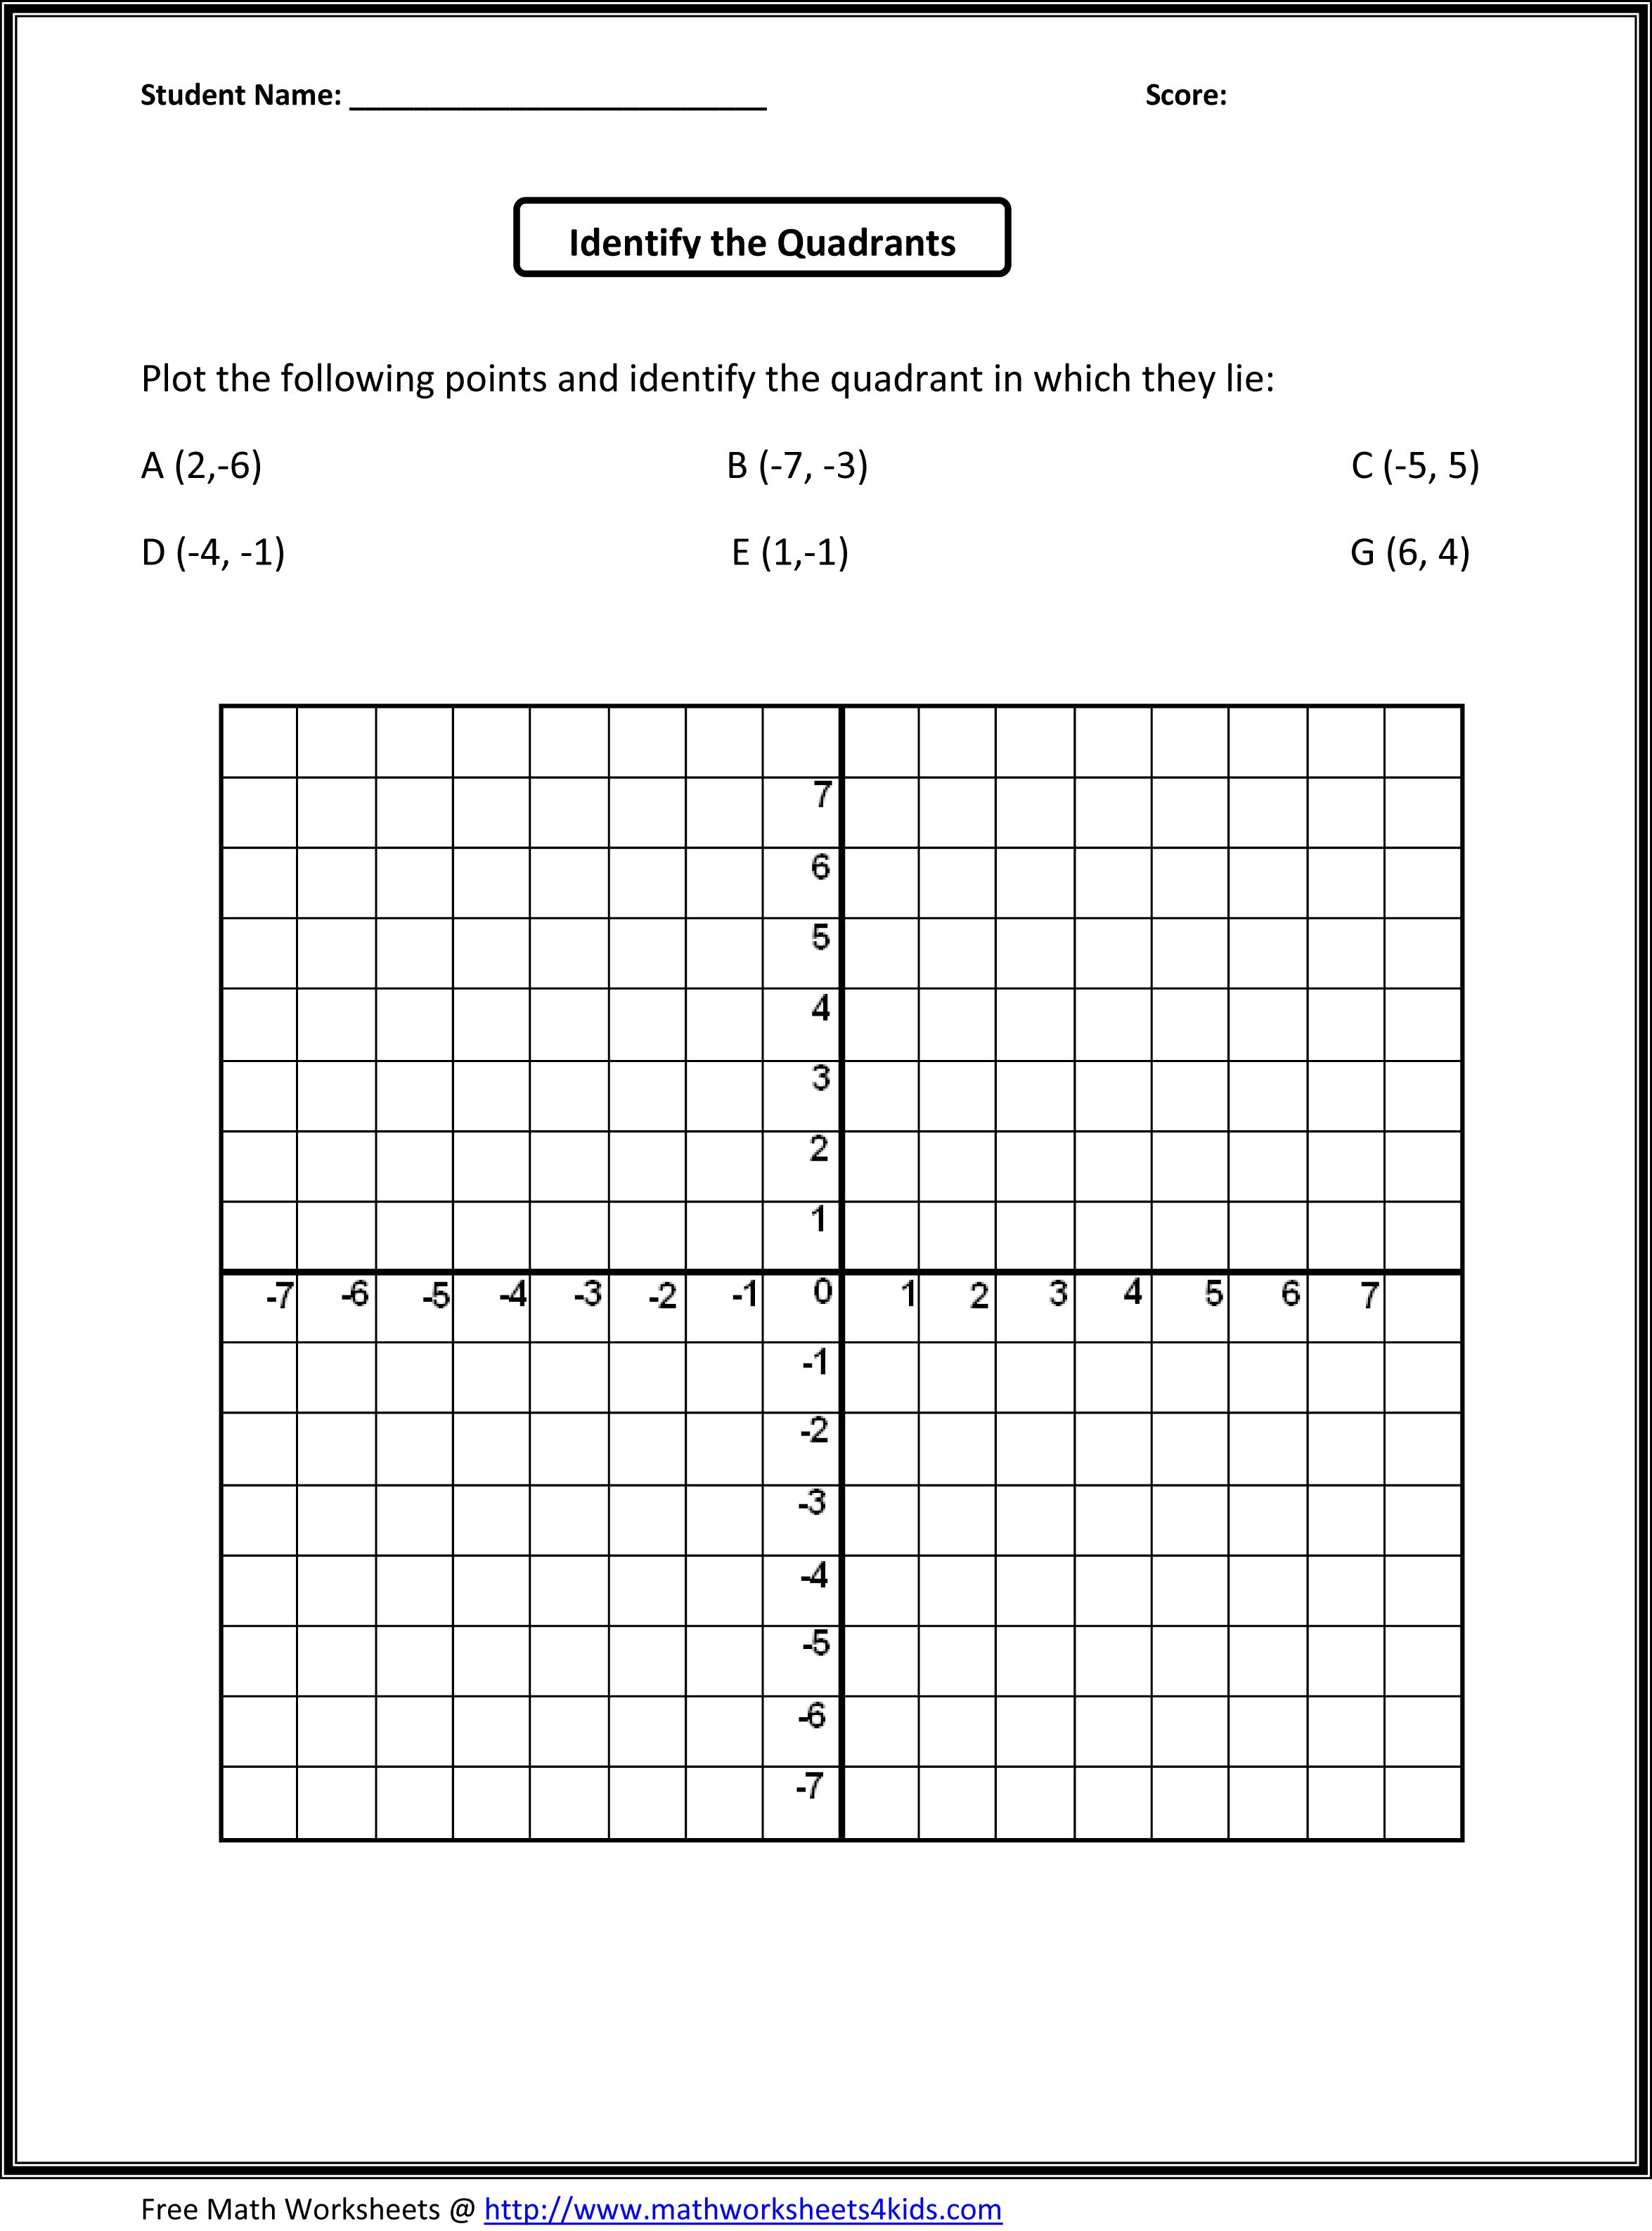 math worksheet : 1000 images about summer school on pinterest  5th grade math  : Fifth Class Maths Worksheets